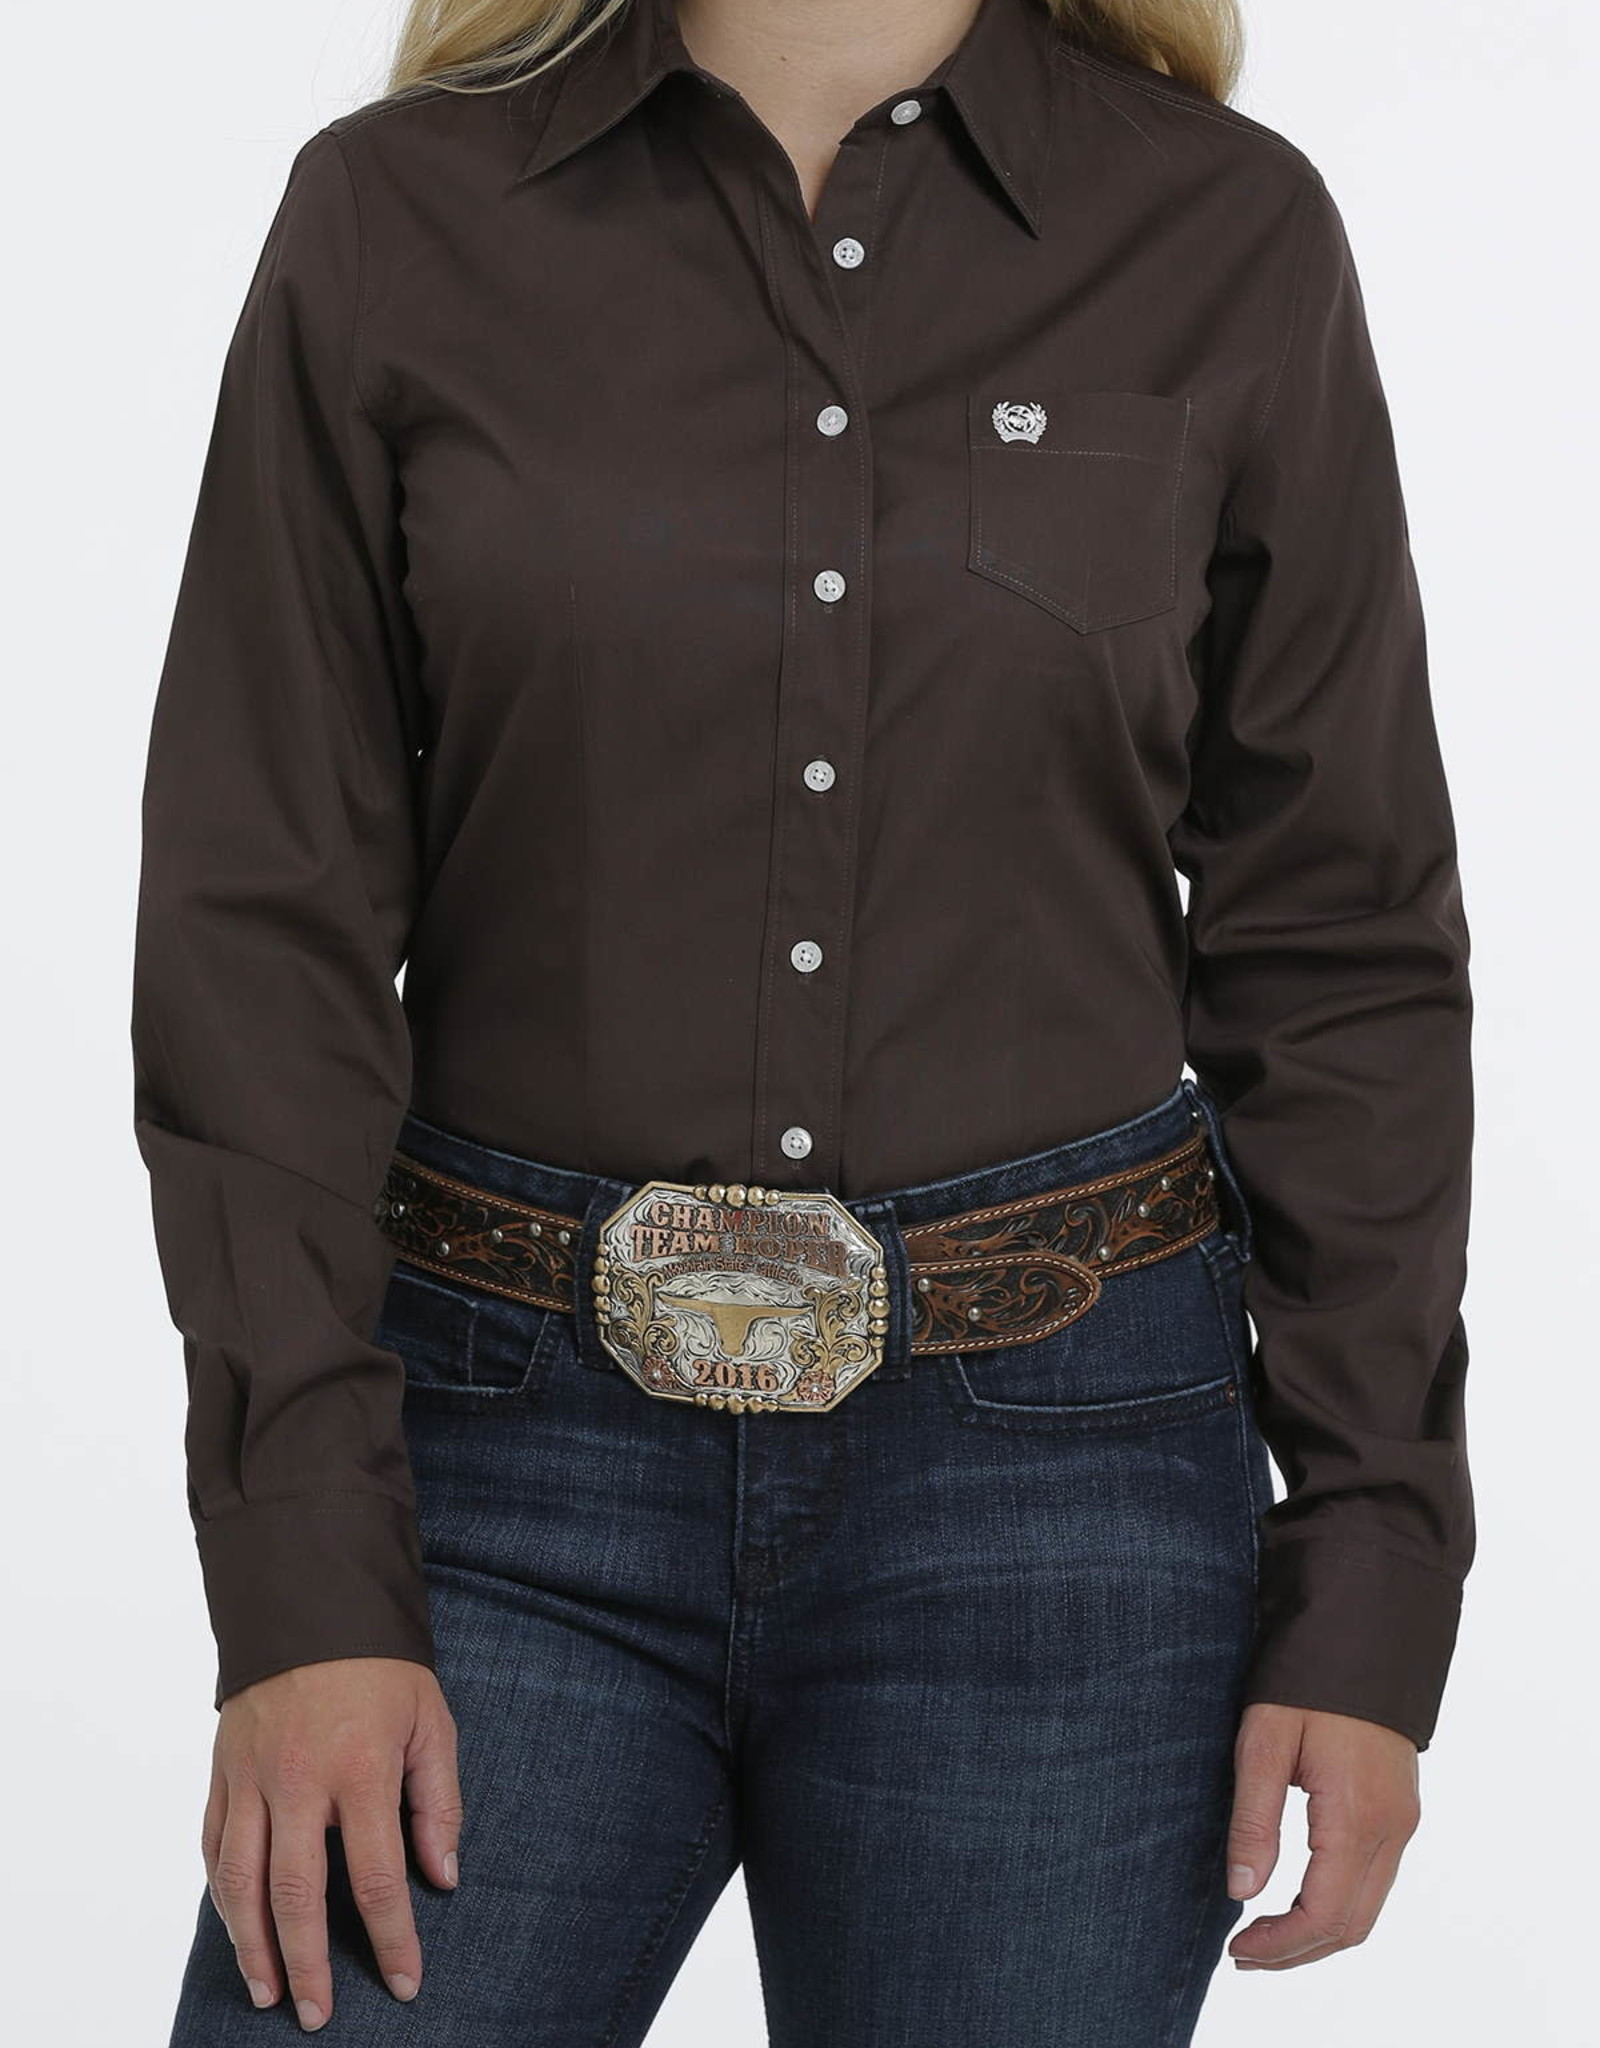 Cinch Cinch Womens Solid Chocolate Brown Western Button Down Shirt